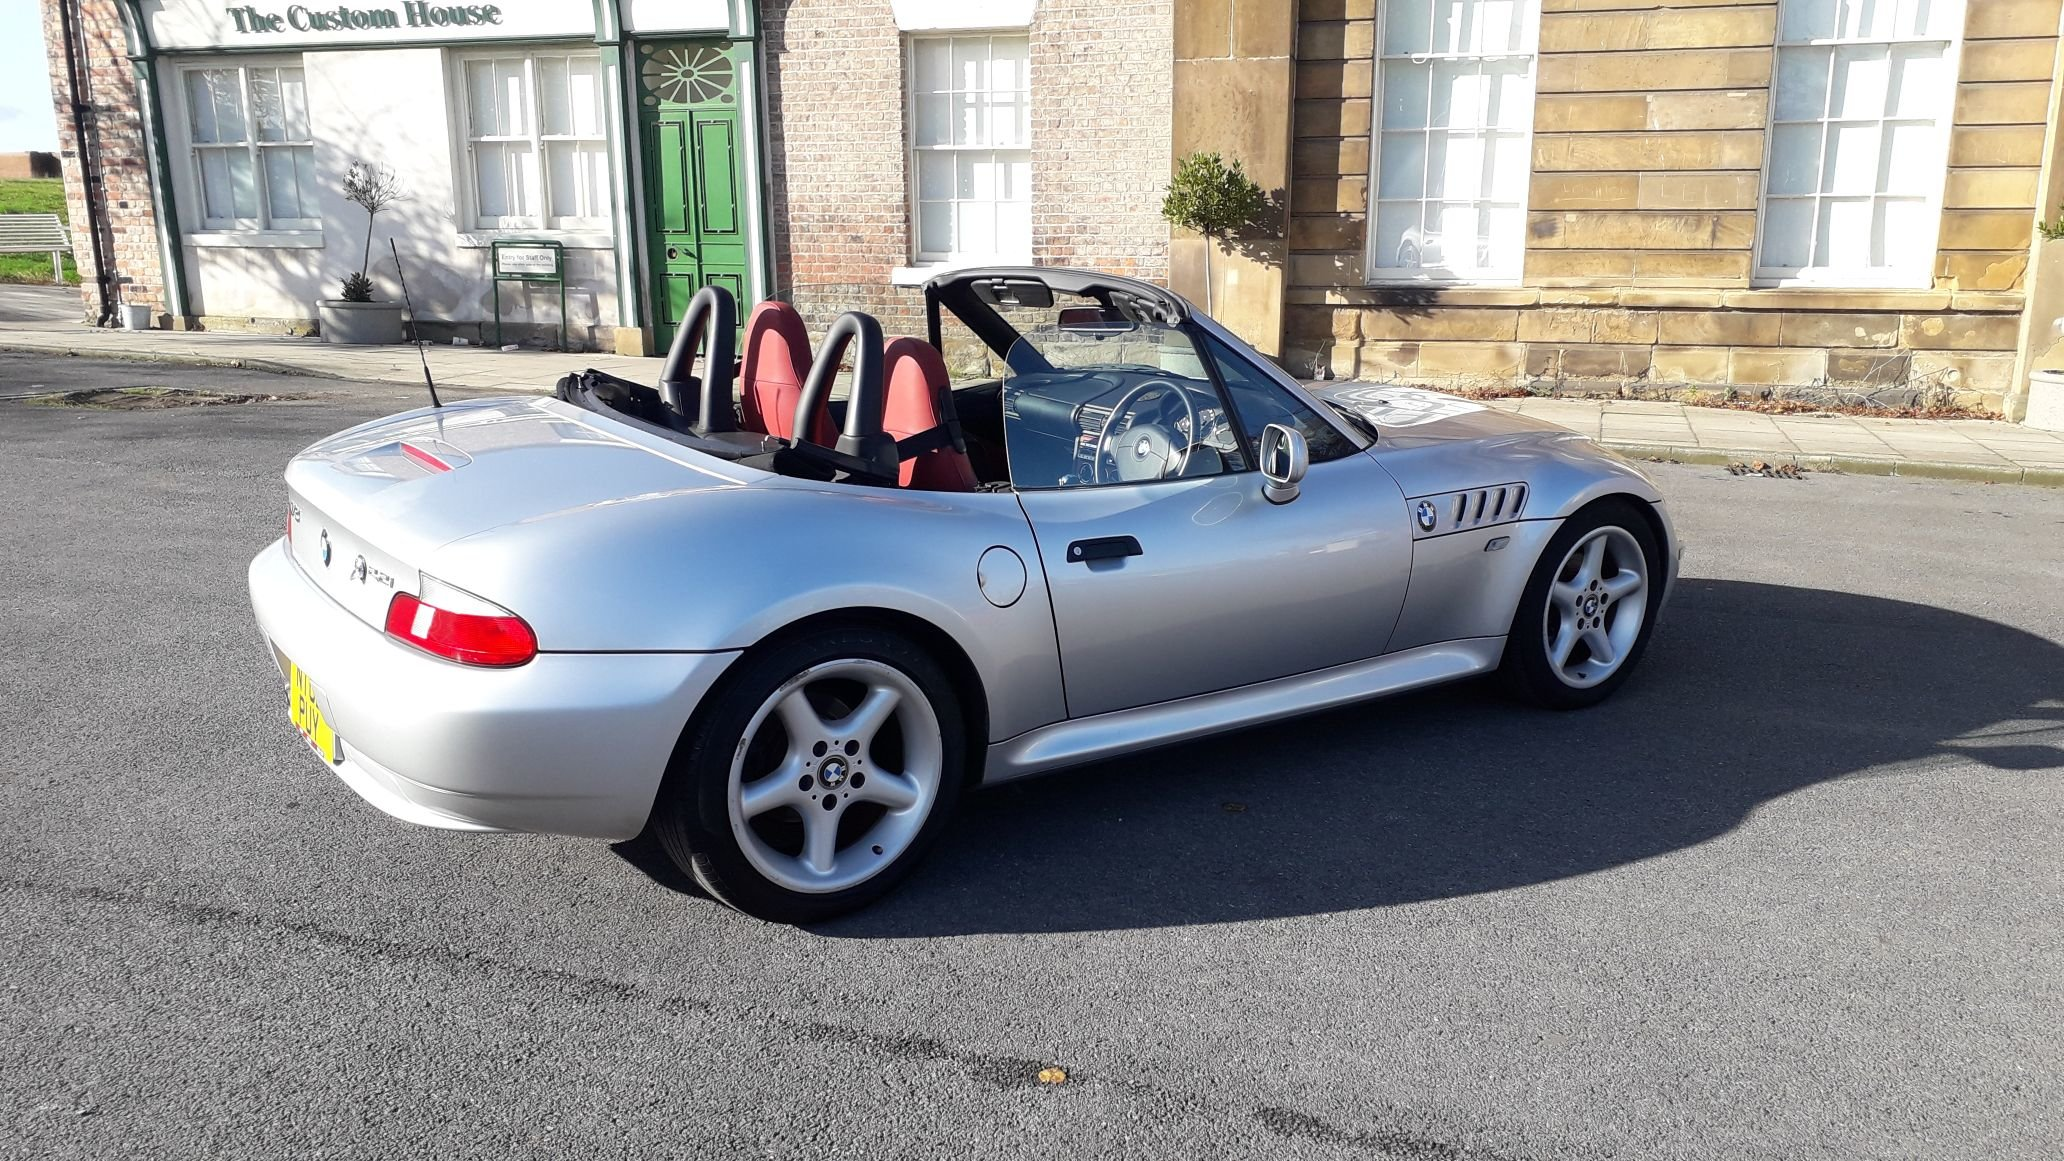 2002 BMW Z3 2.2 JAPANESE IMPORT - UK REGISTERED- LOVELY CONDITION SOLD (picture 2 of 6)